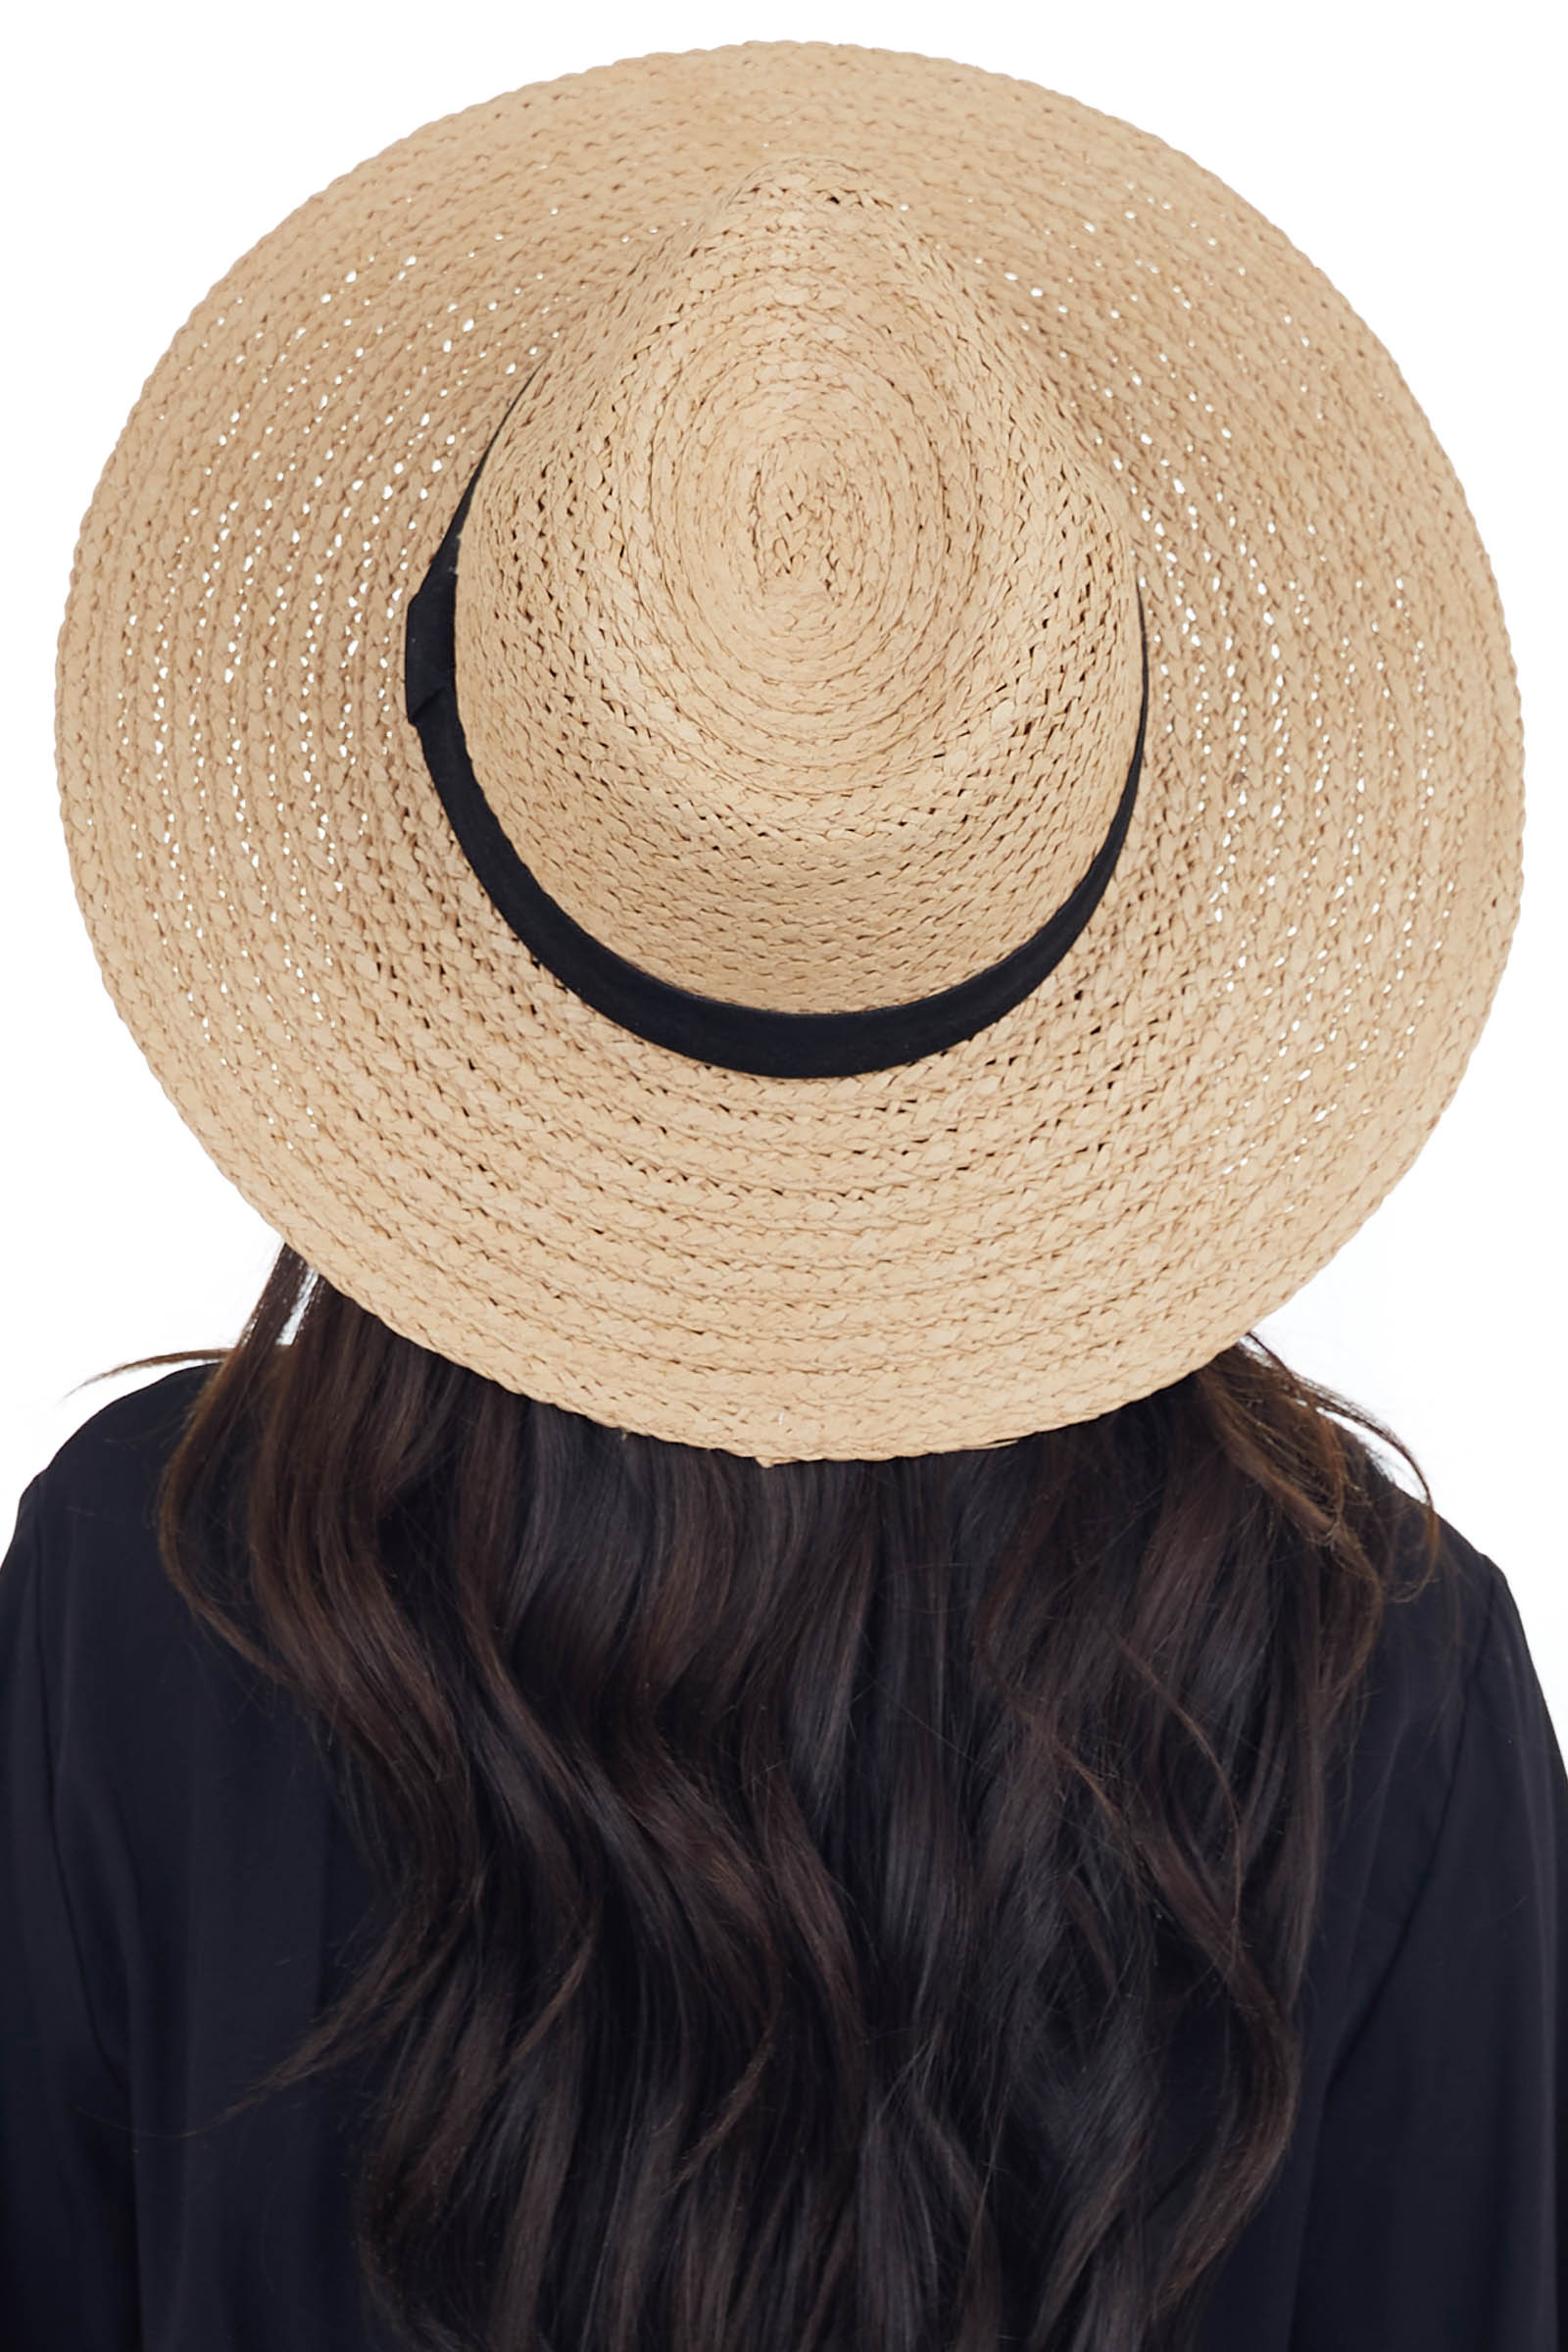 Tan Panama Straw Hat with Black Suede Trim Detail